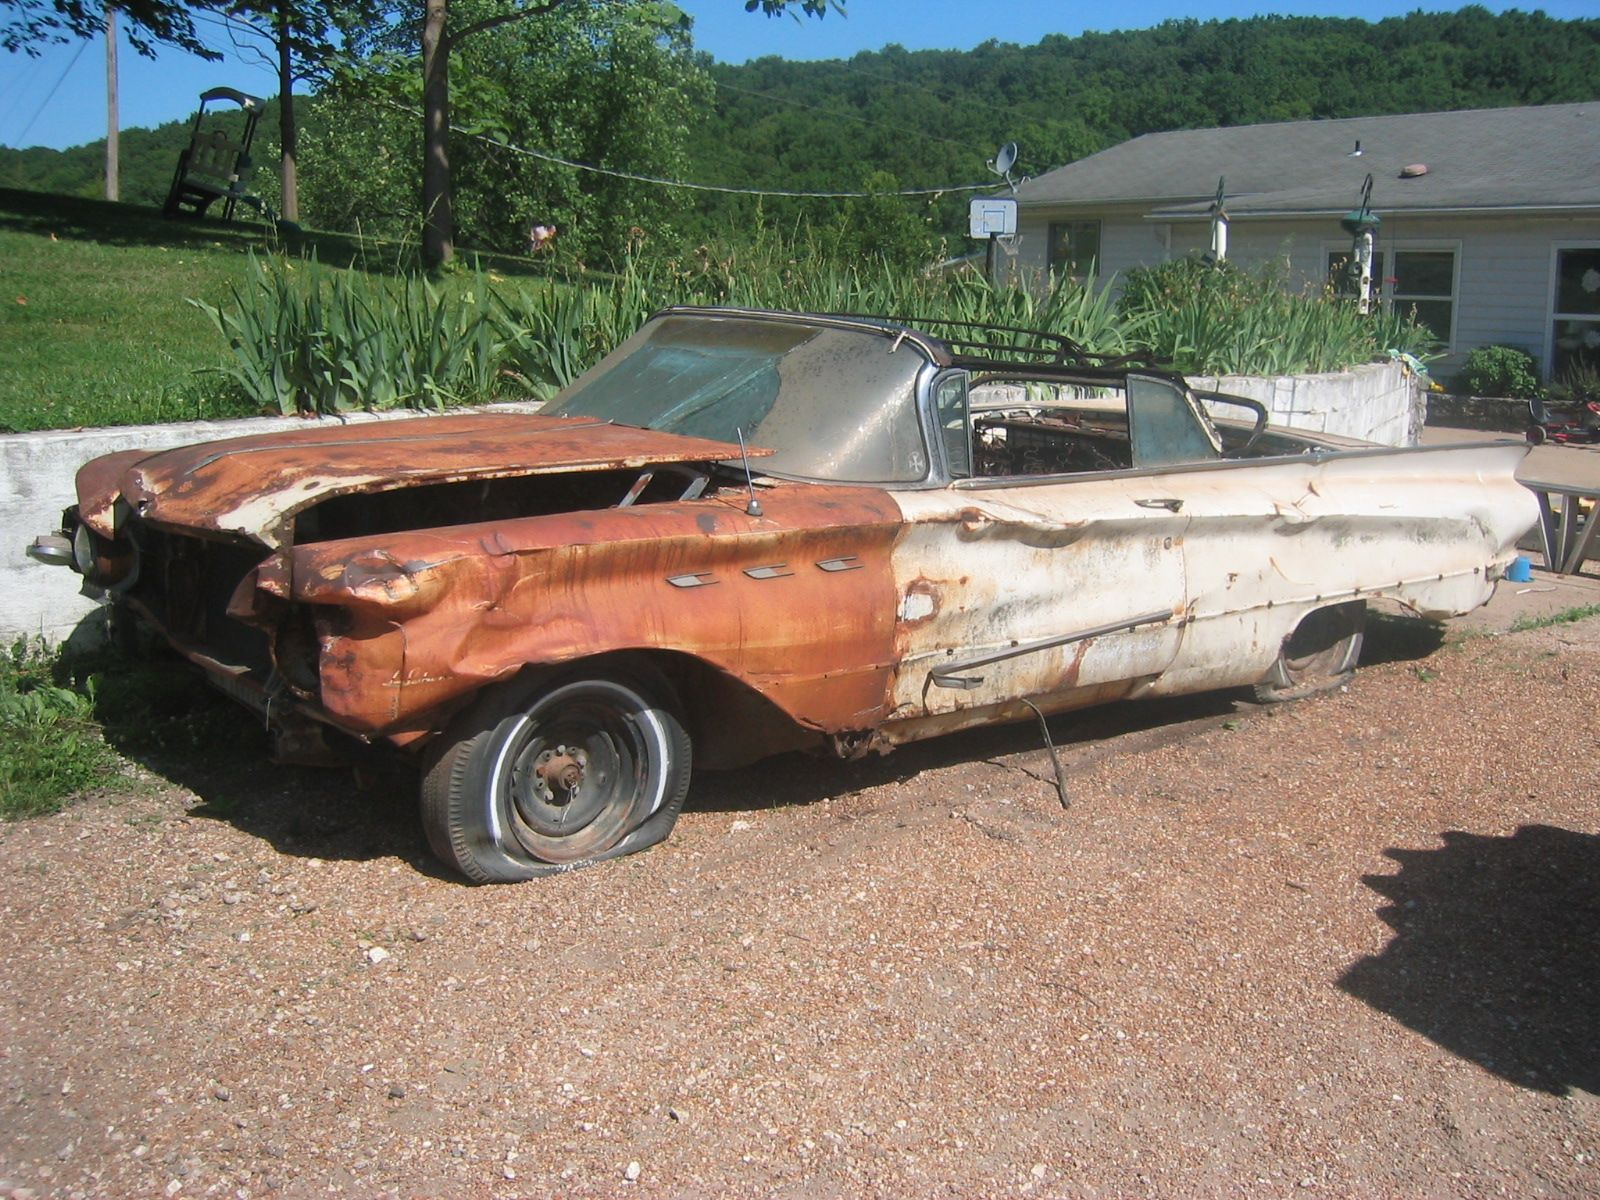 1960 Buick convertible Maintenance/restoration of old/vintage ...